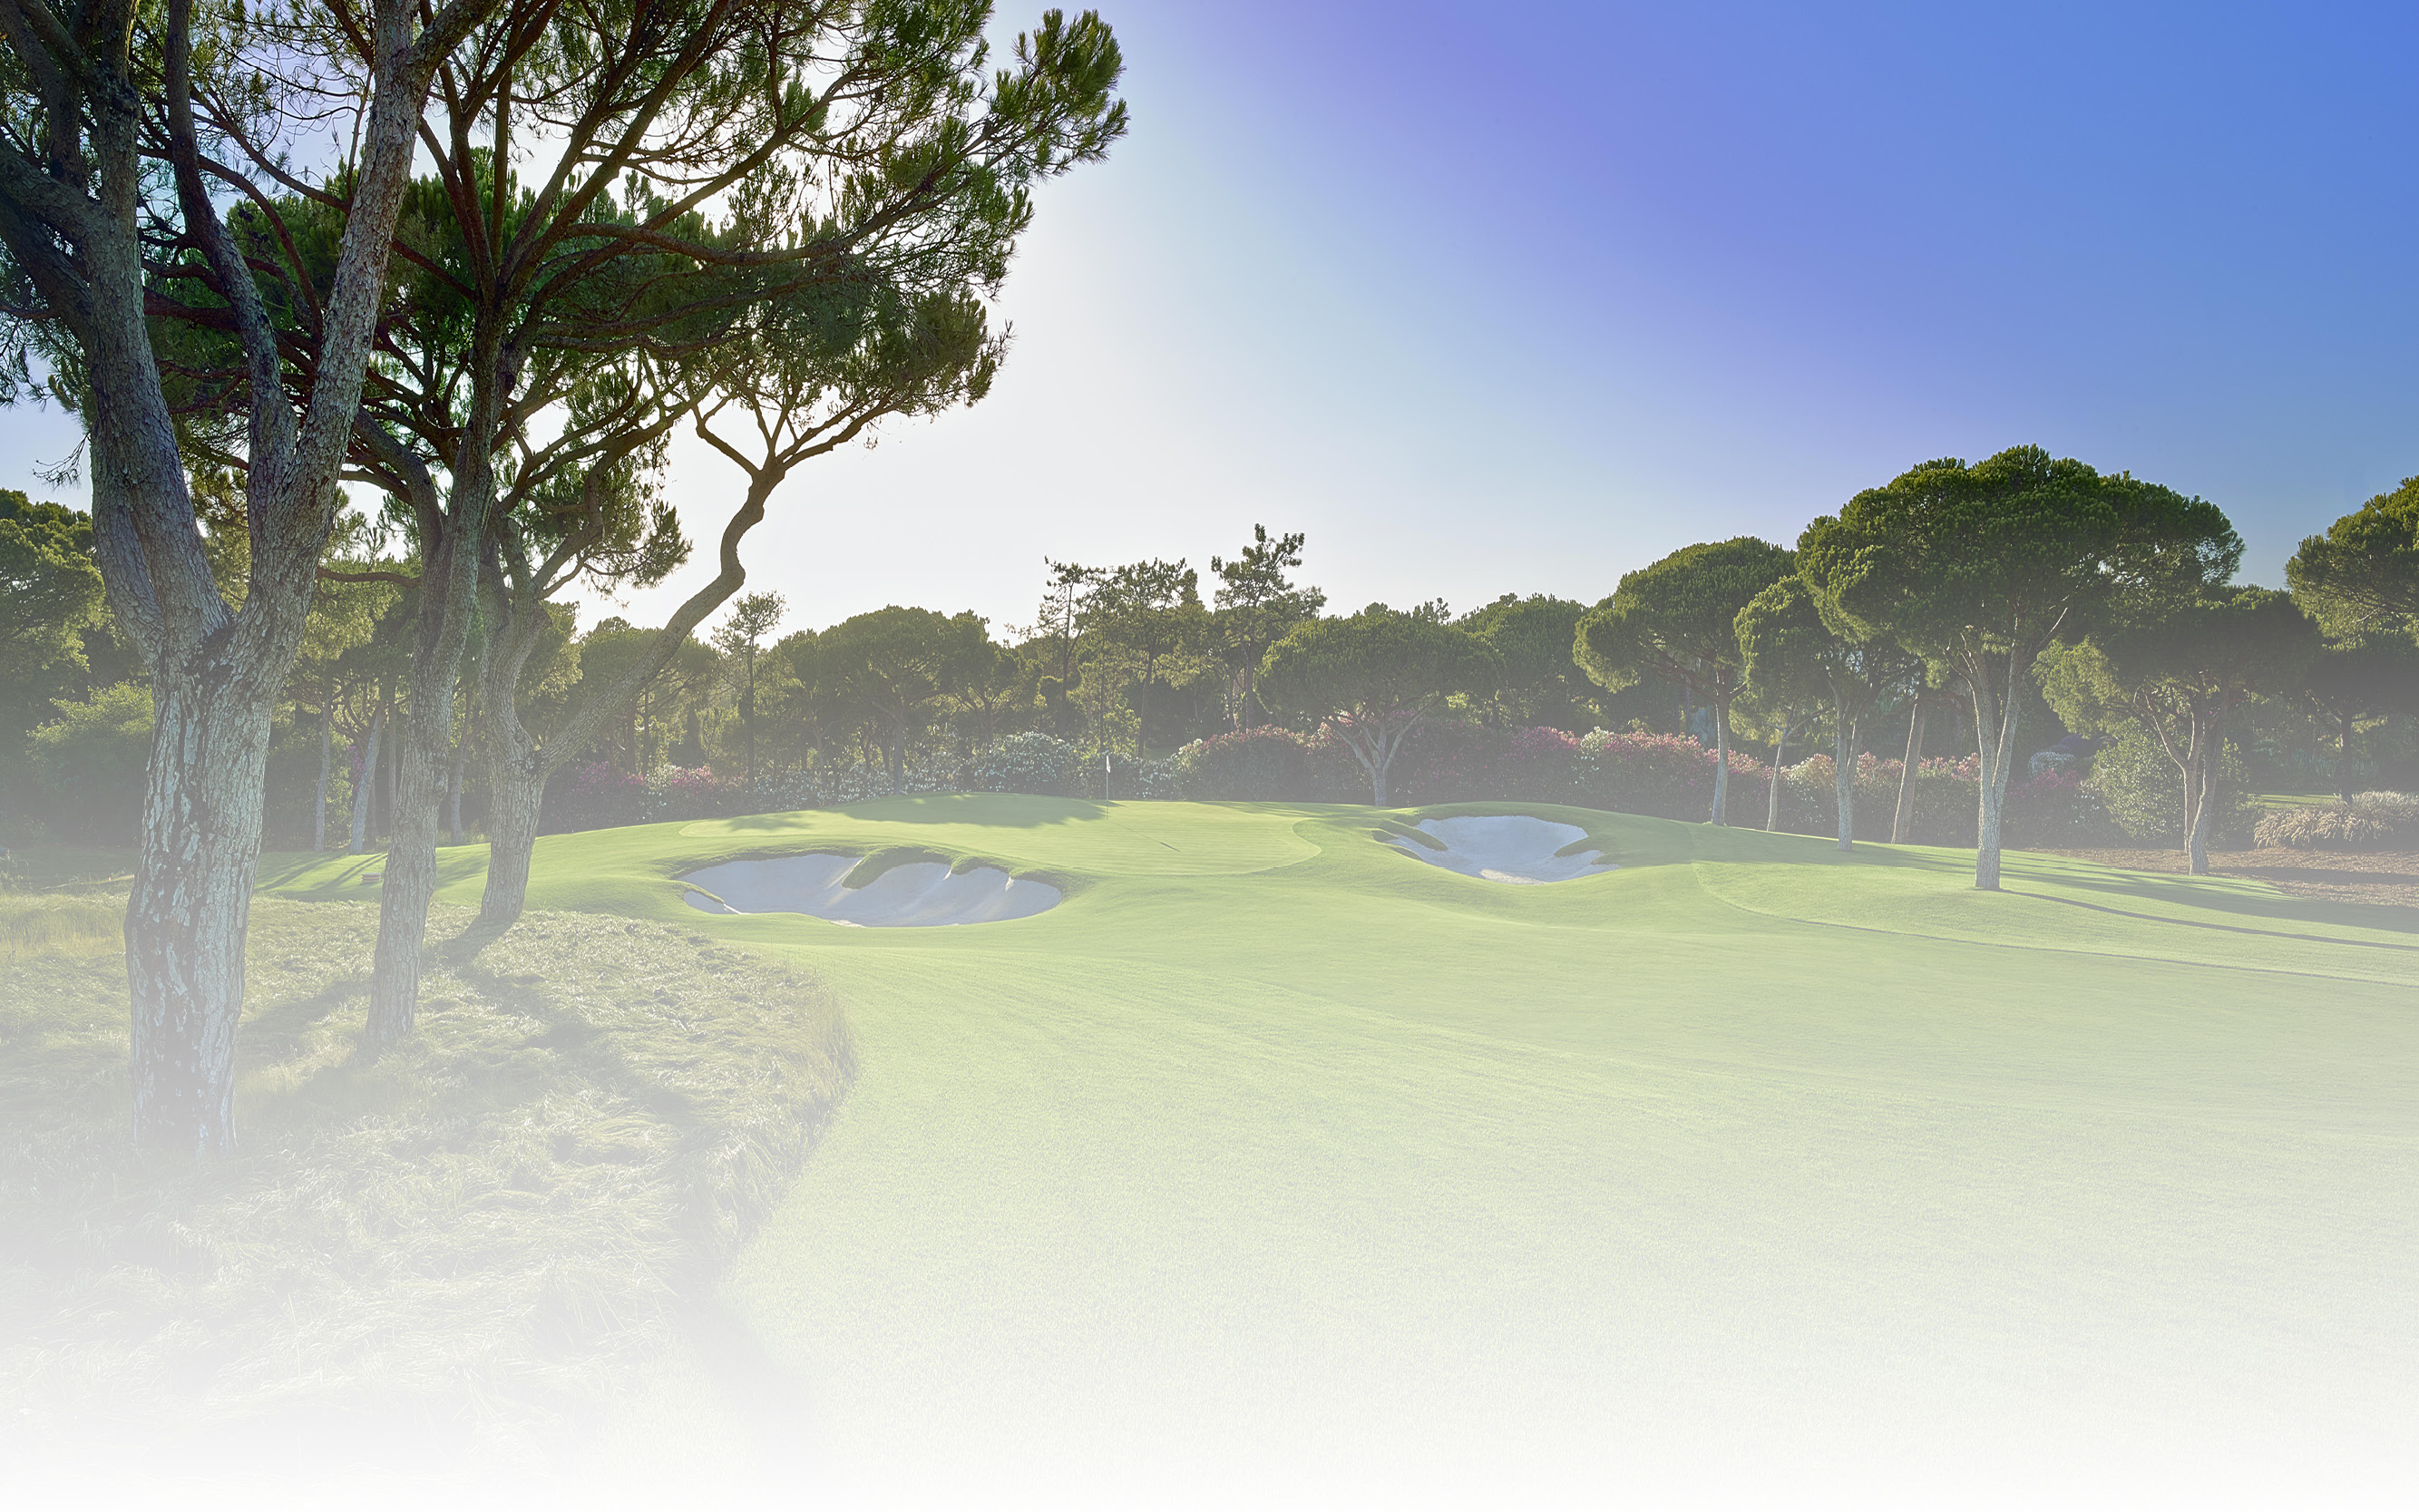 Quinta de lago golf strike golf travel